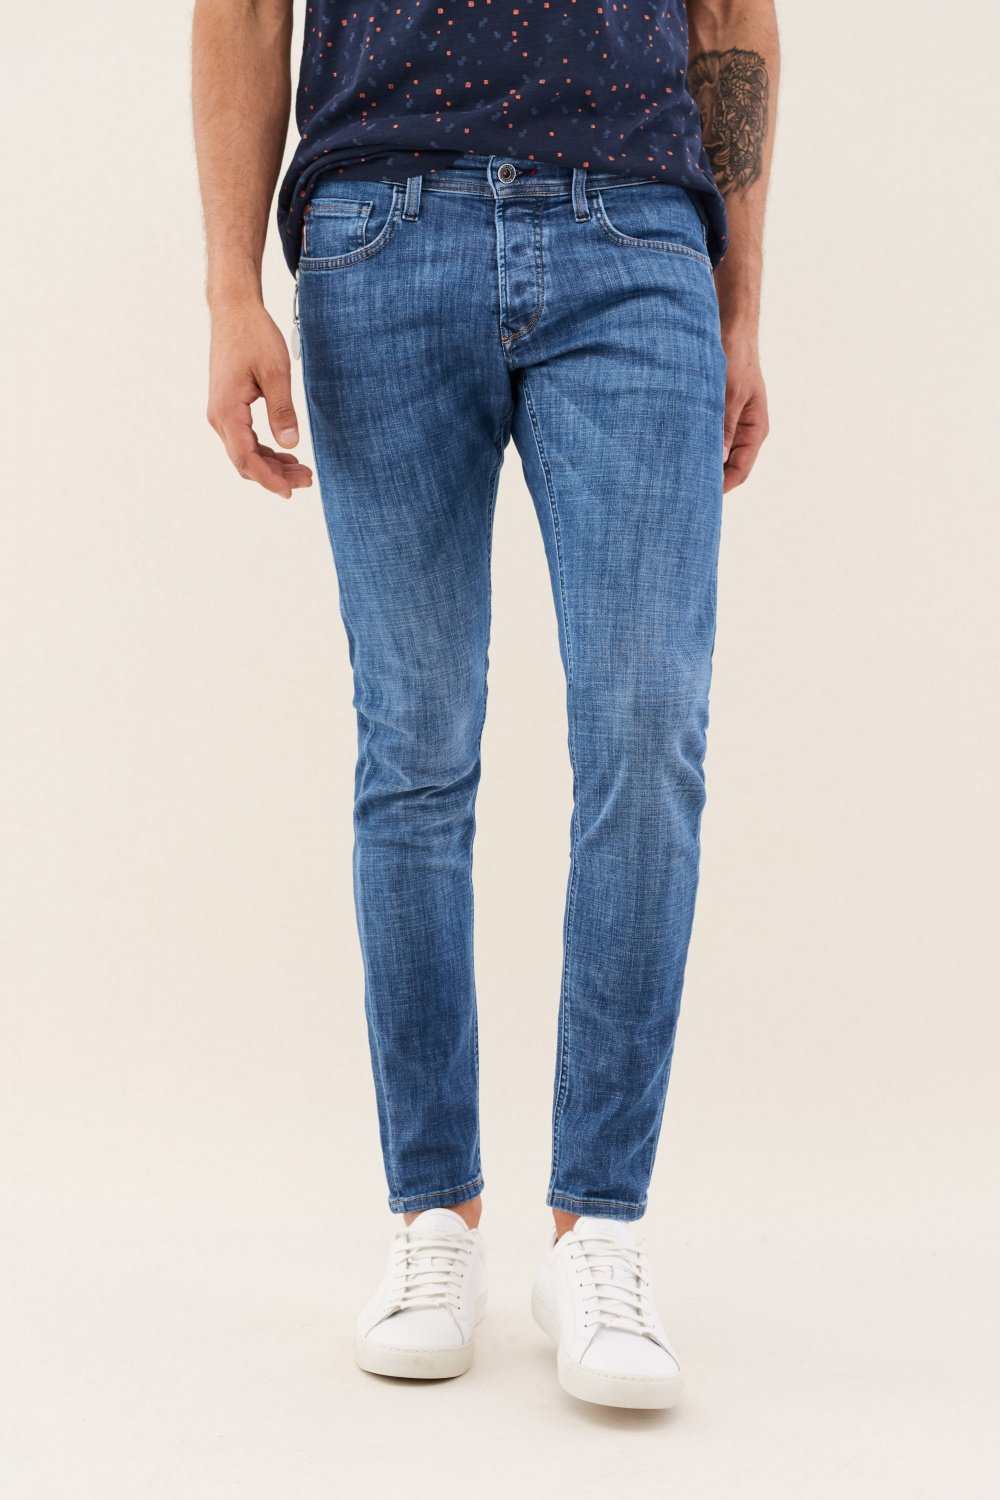 Clash skinny spartan jeans with effect - Salsa